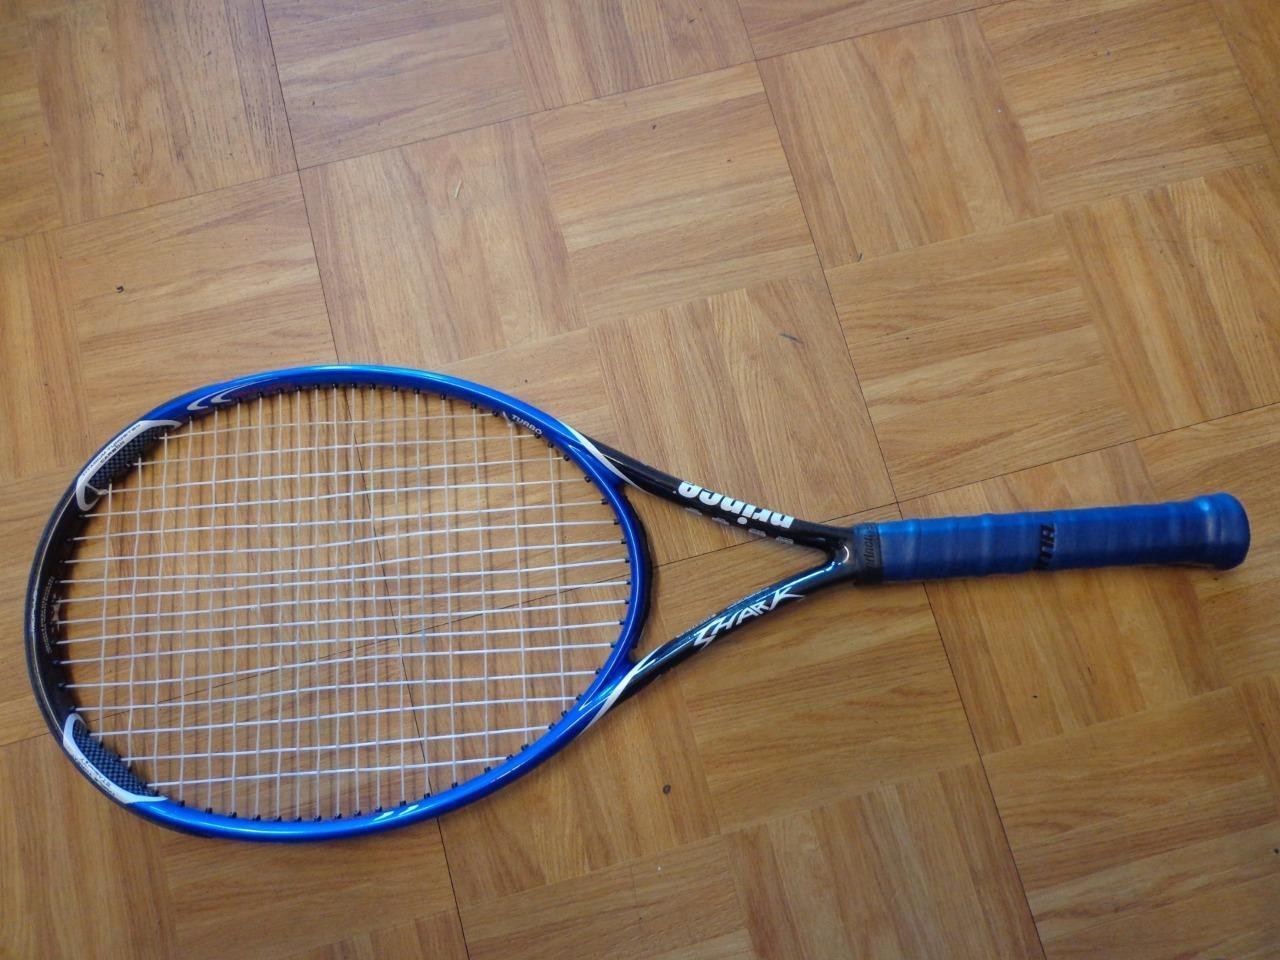 Prince Shark Turbo Longbody Midplus 100 head 10.6oz 4 3 8 grip Tennis Racquet